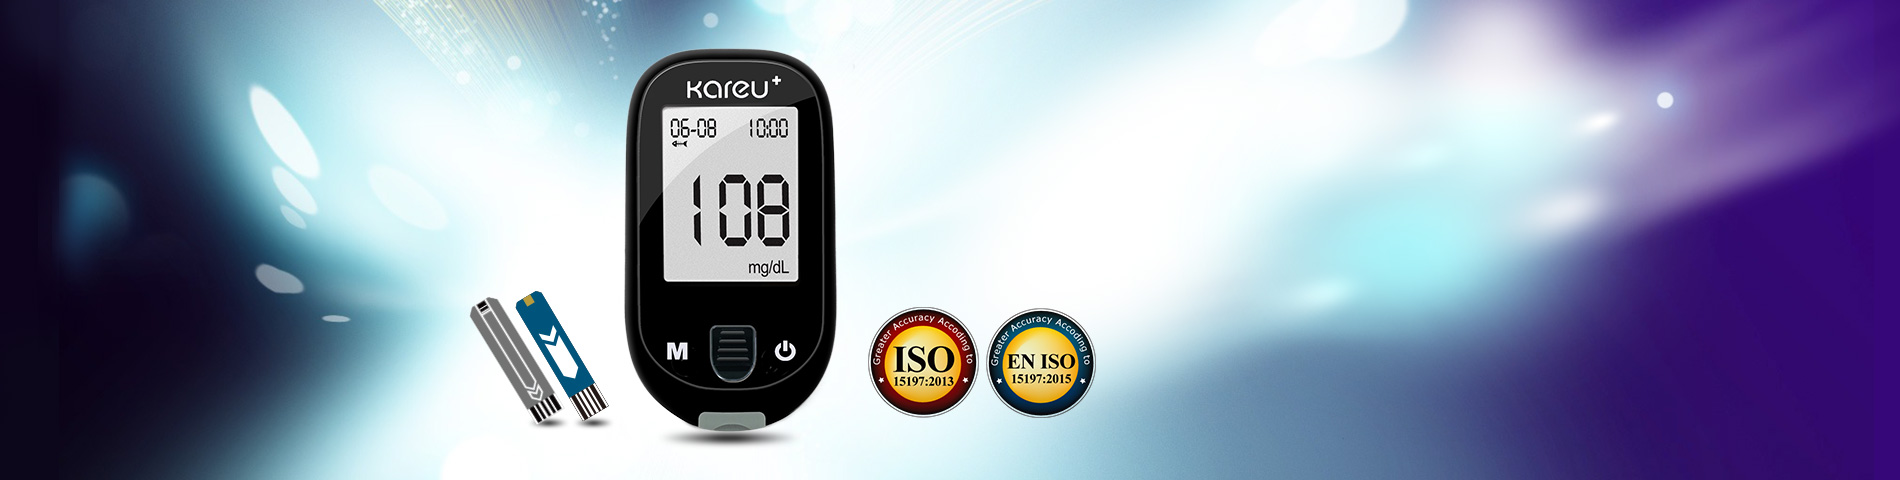 Quick Reaction & High Accuracy Blood Glucose Meter Monitor blood glucose levels on a regular basis